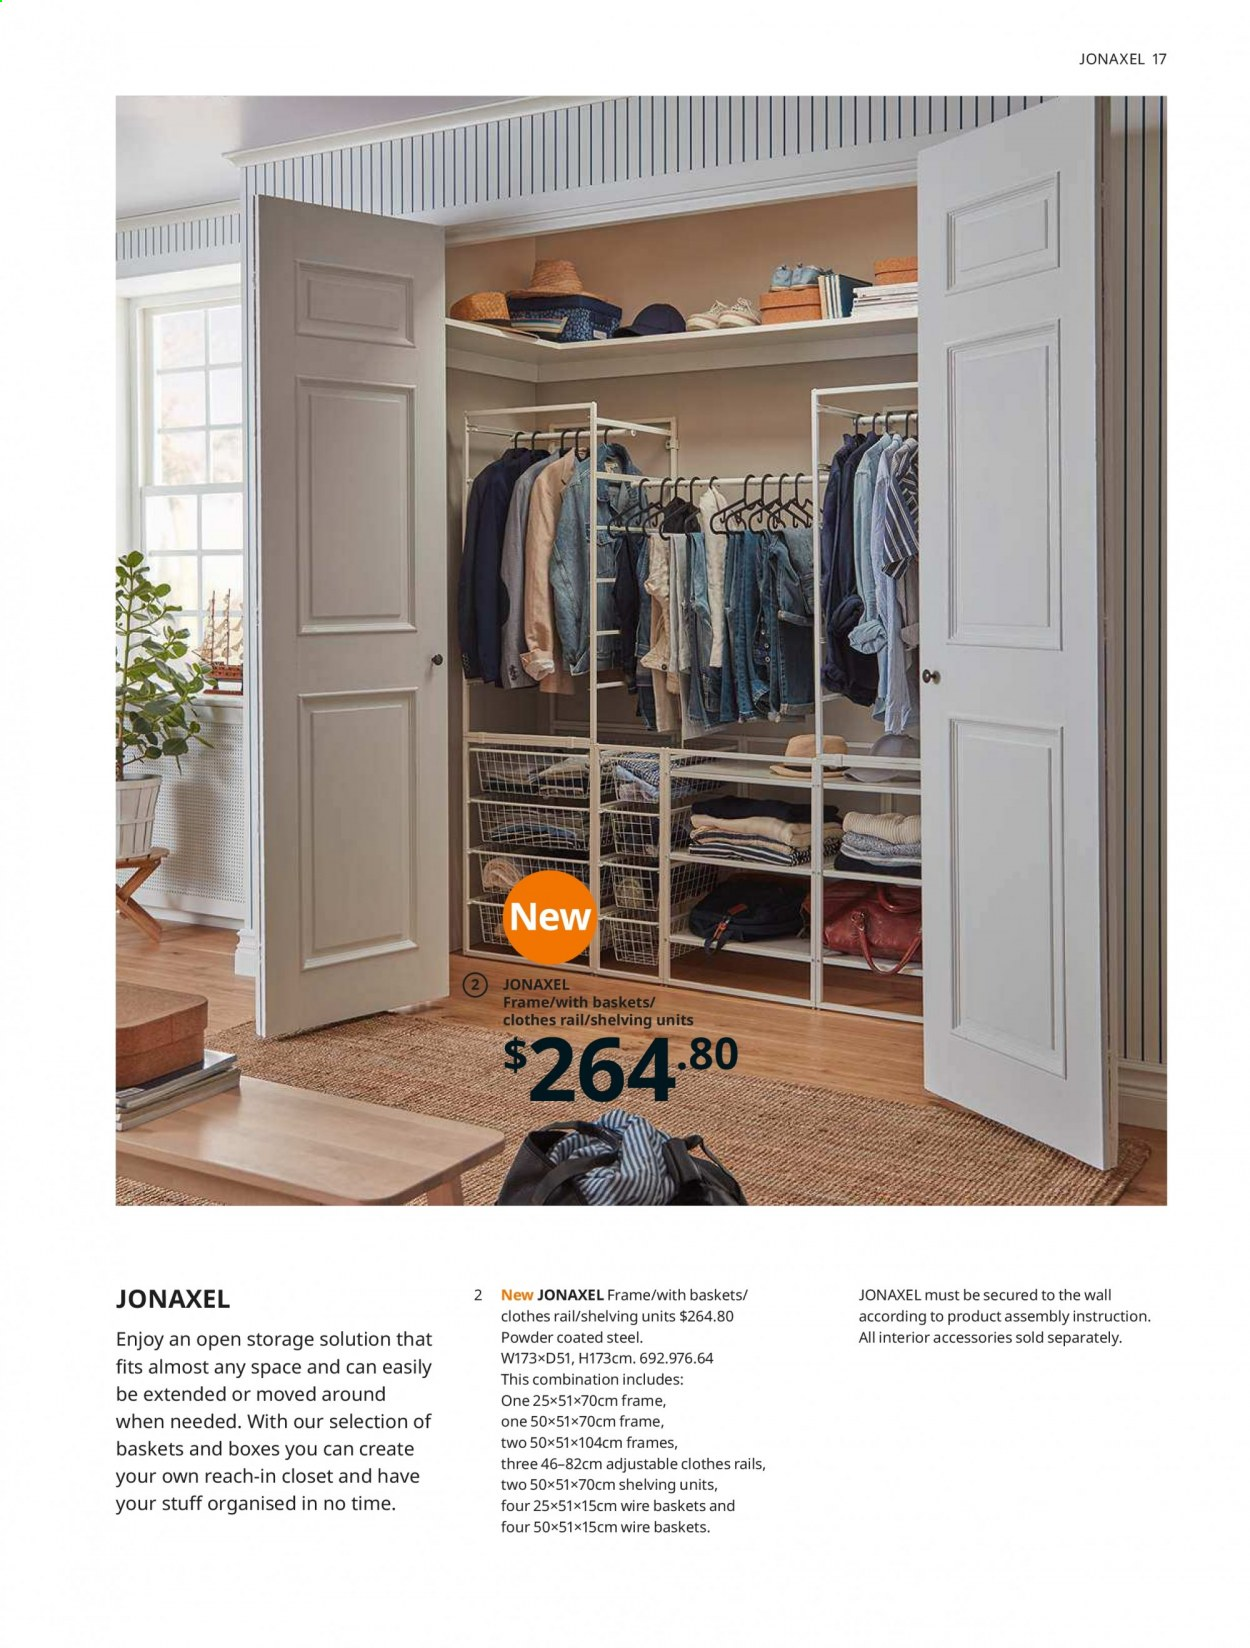 IKEA offer  - 1.4.2020 - 31.7.2020 - Sales products - basket, box, shelf, shelves, hook, powder. Page 17.